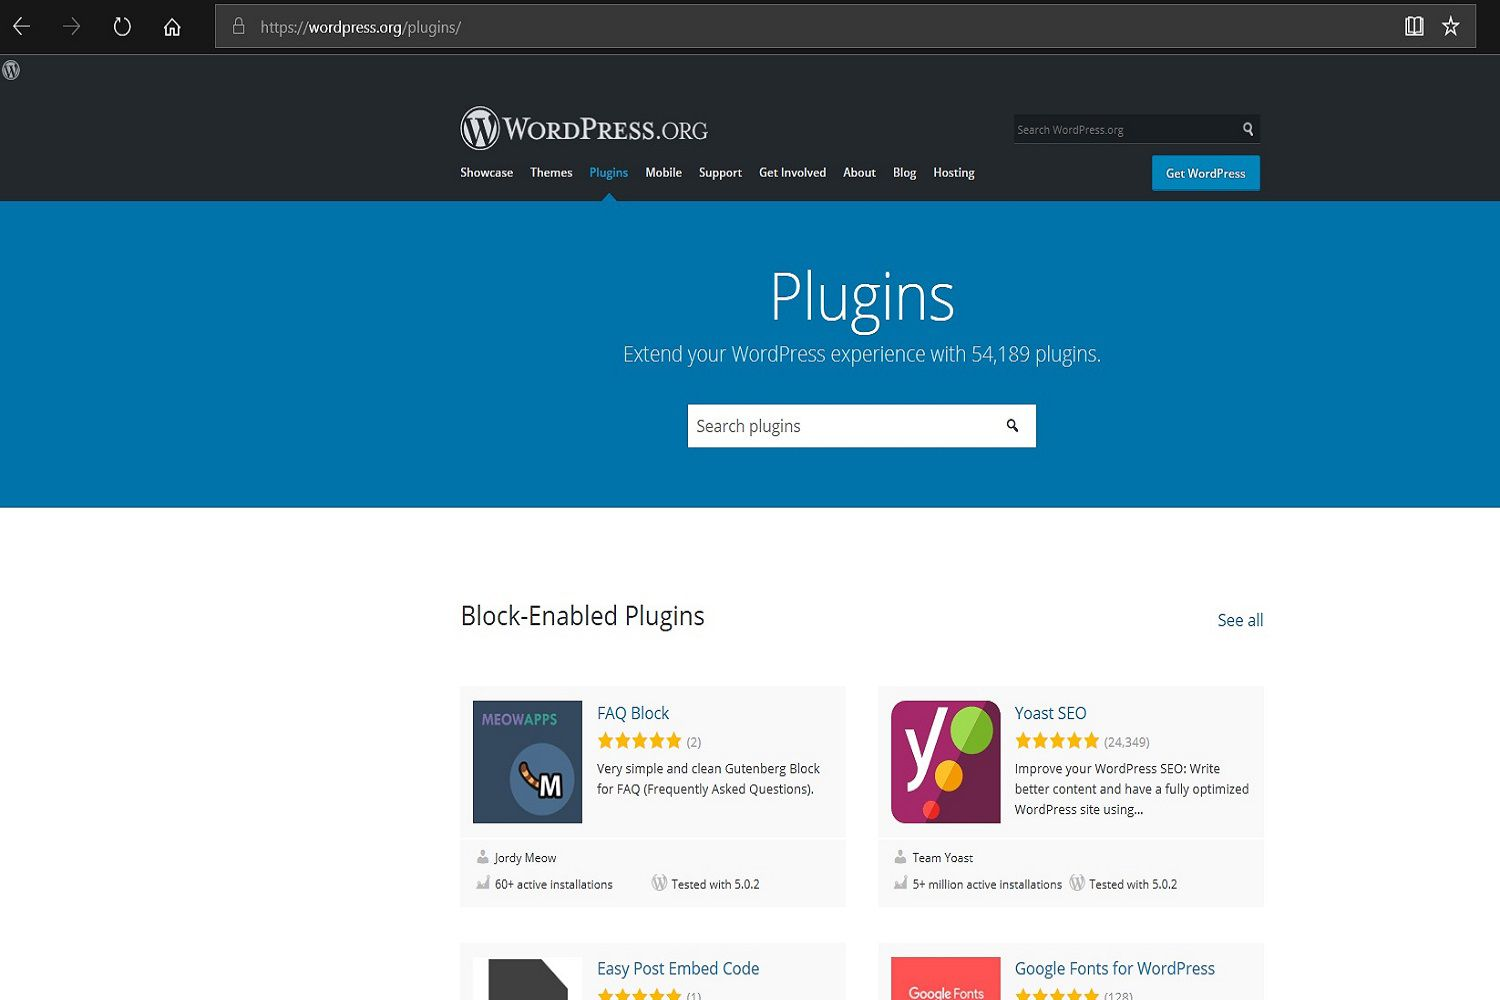 What Are Plugins And How Do They Work?